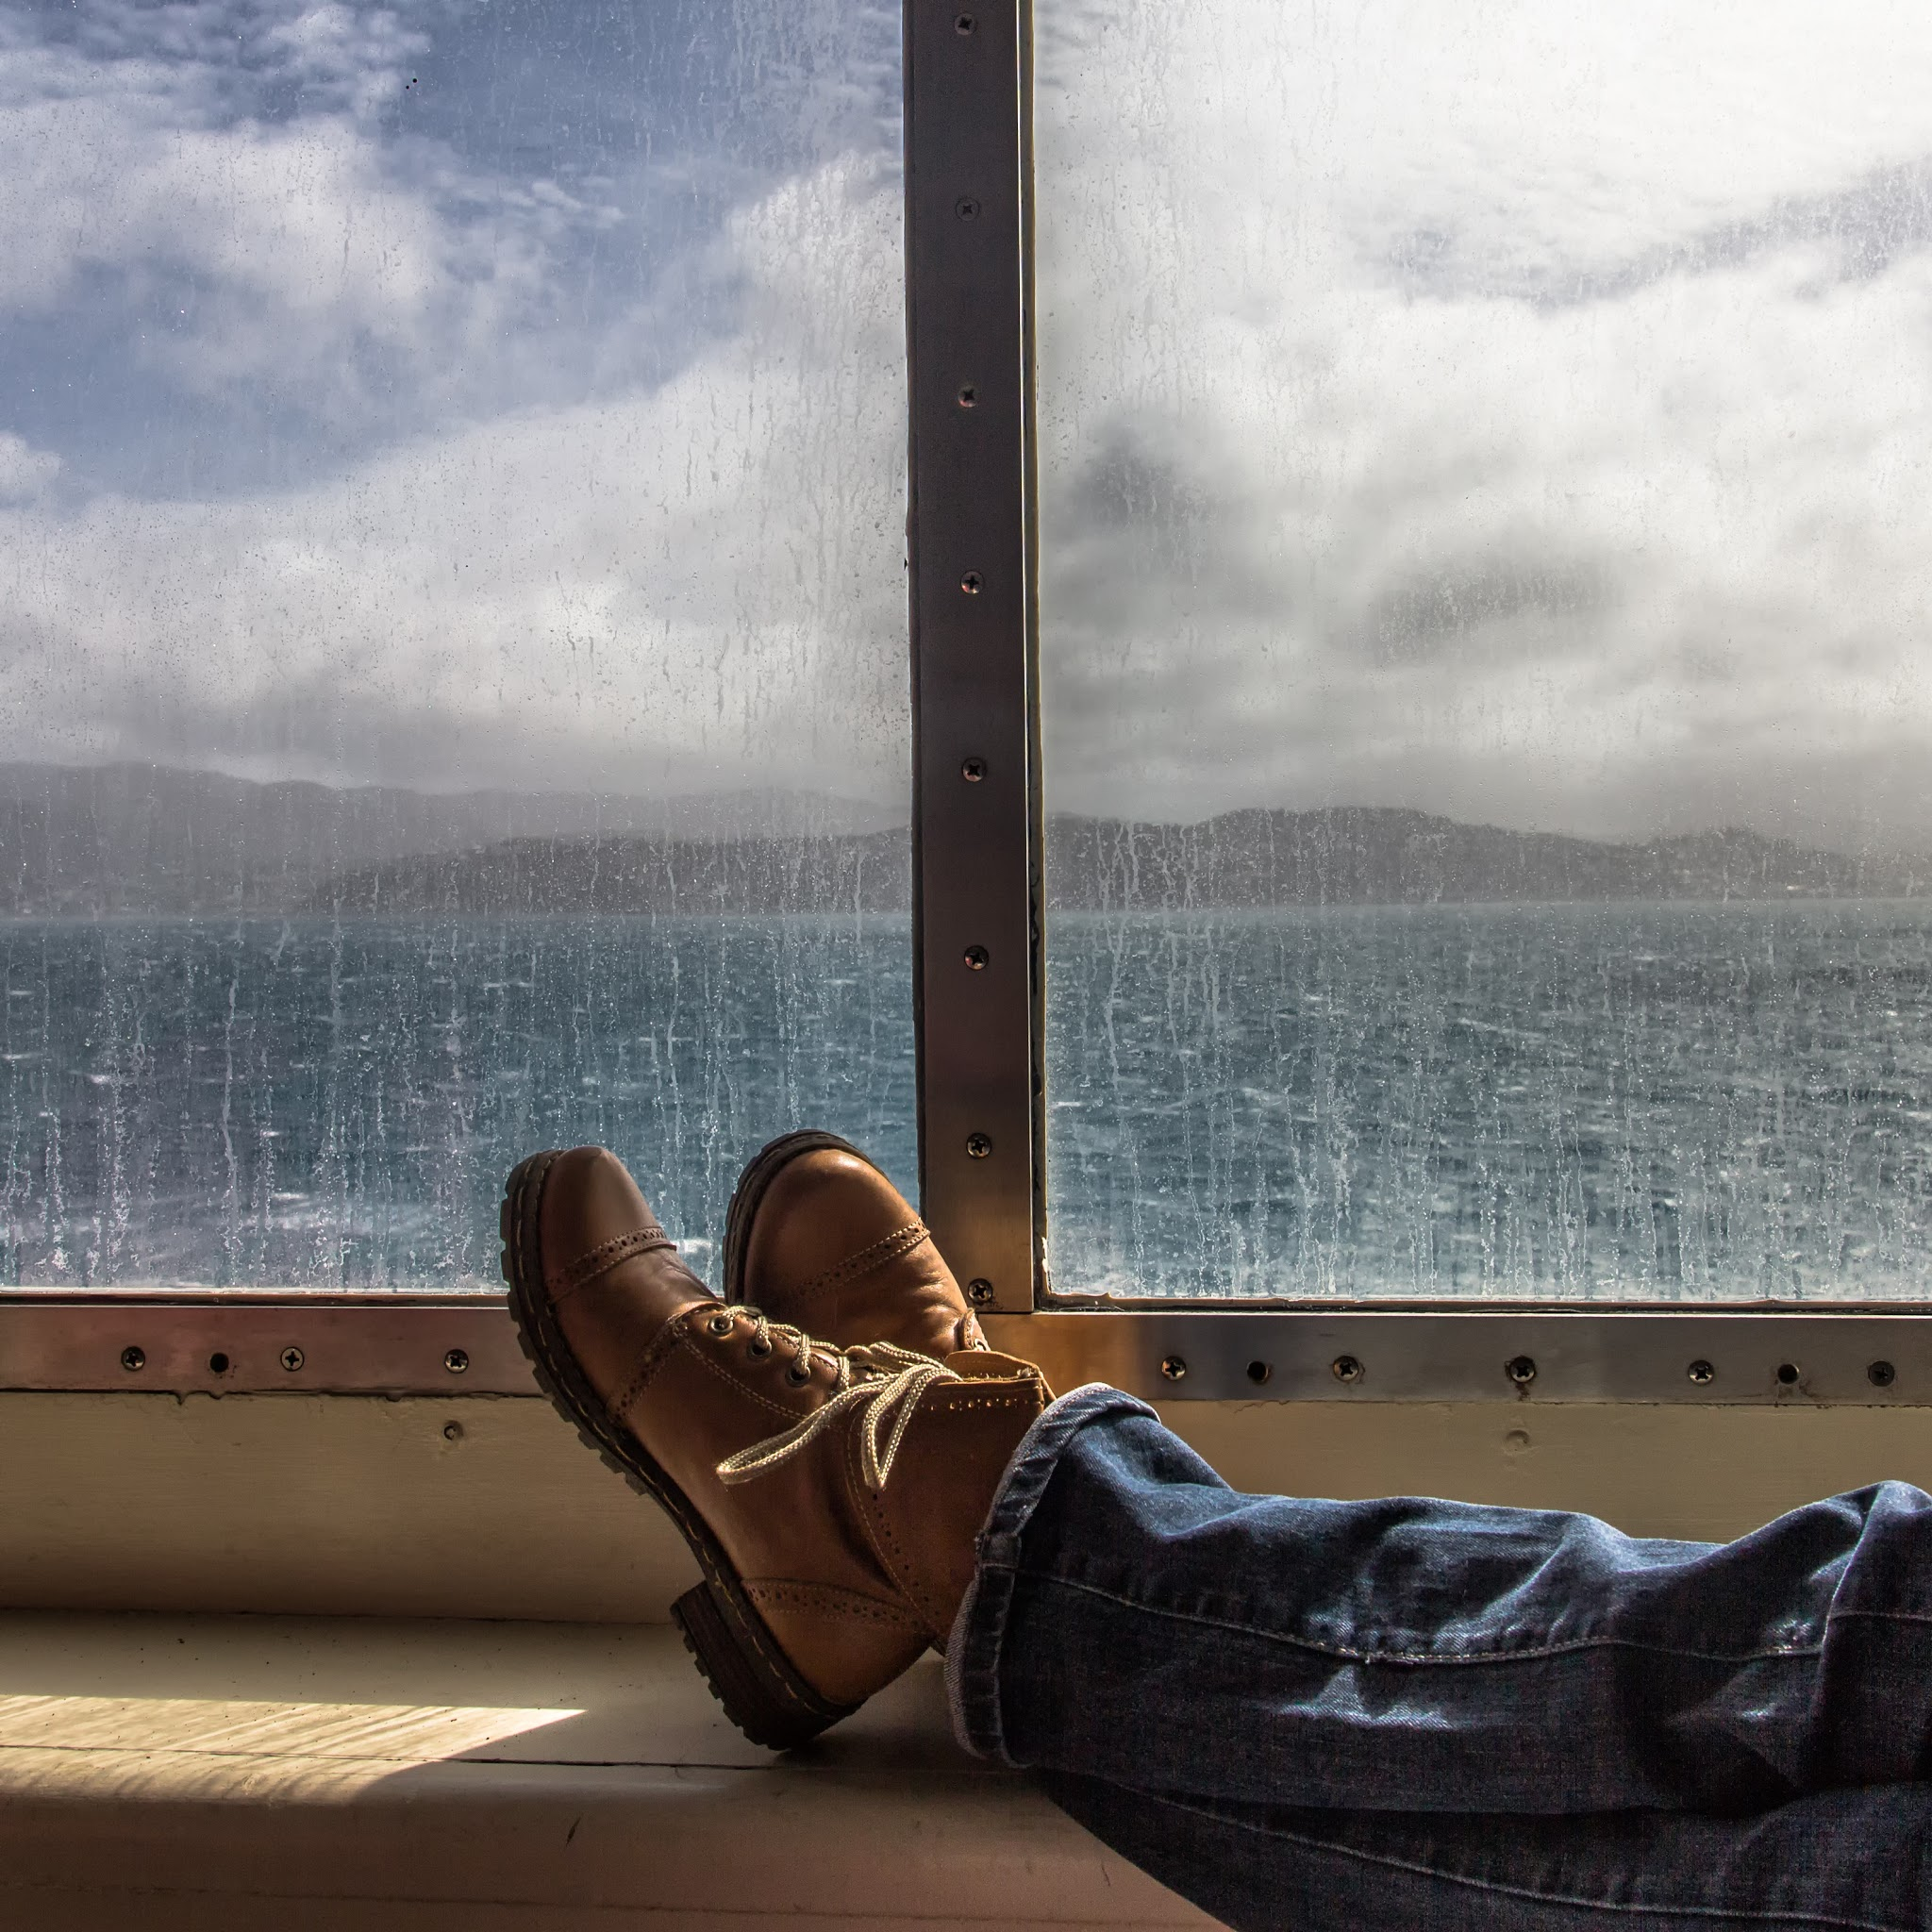 Photo: (Trying to) enjoy the view  @ Cook Strait, New Zealand (September 2013)